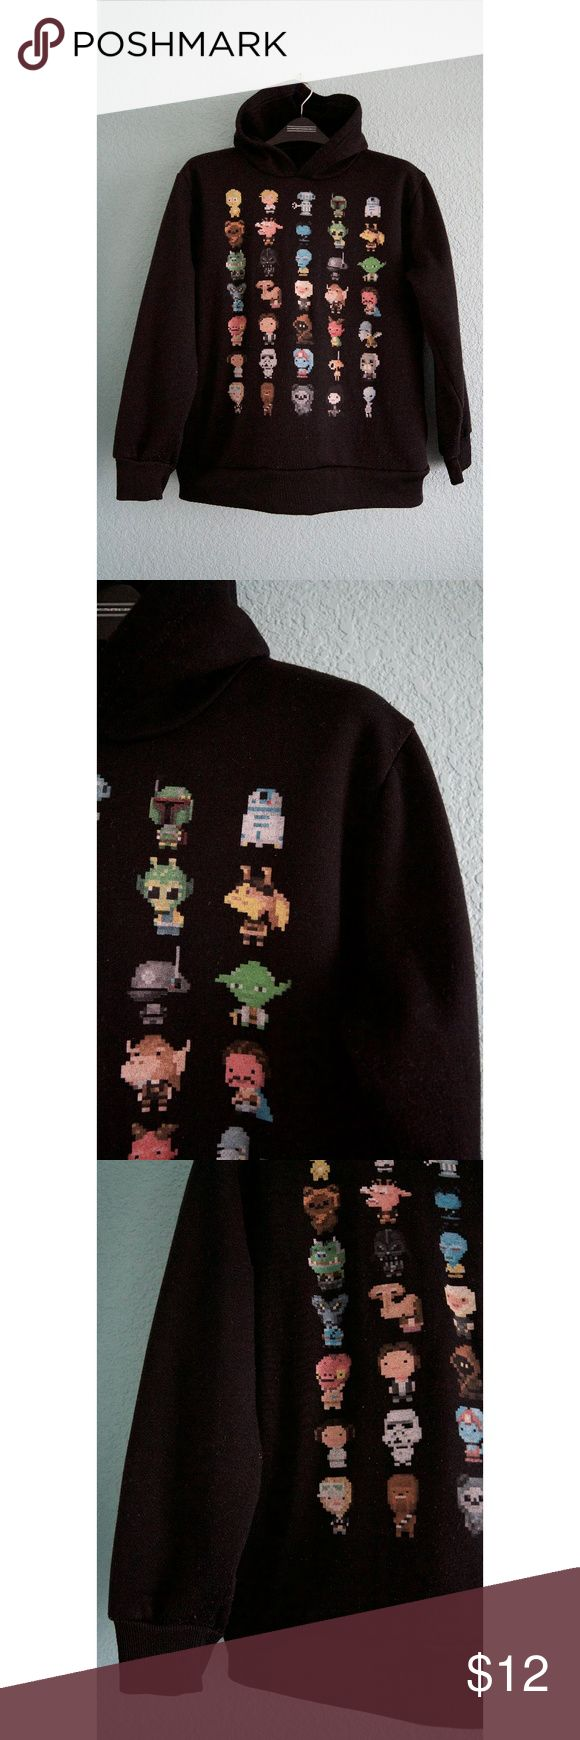 Star Wars (Boys) | Pixelated Character Hoodie Black hoodie with pixelated Star Wars characters from Star Wars. Hidden pockets. Good, used condition--minimal pilling. Boys size Medium--true to size. Price is firm. No model. No trades. Bundle for discount. Star Wars Shirts & Tops Sweatshirts & Hoodies